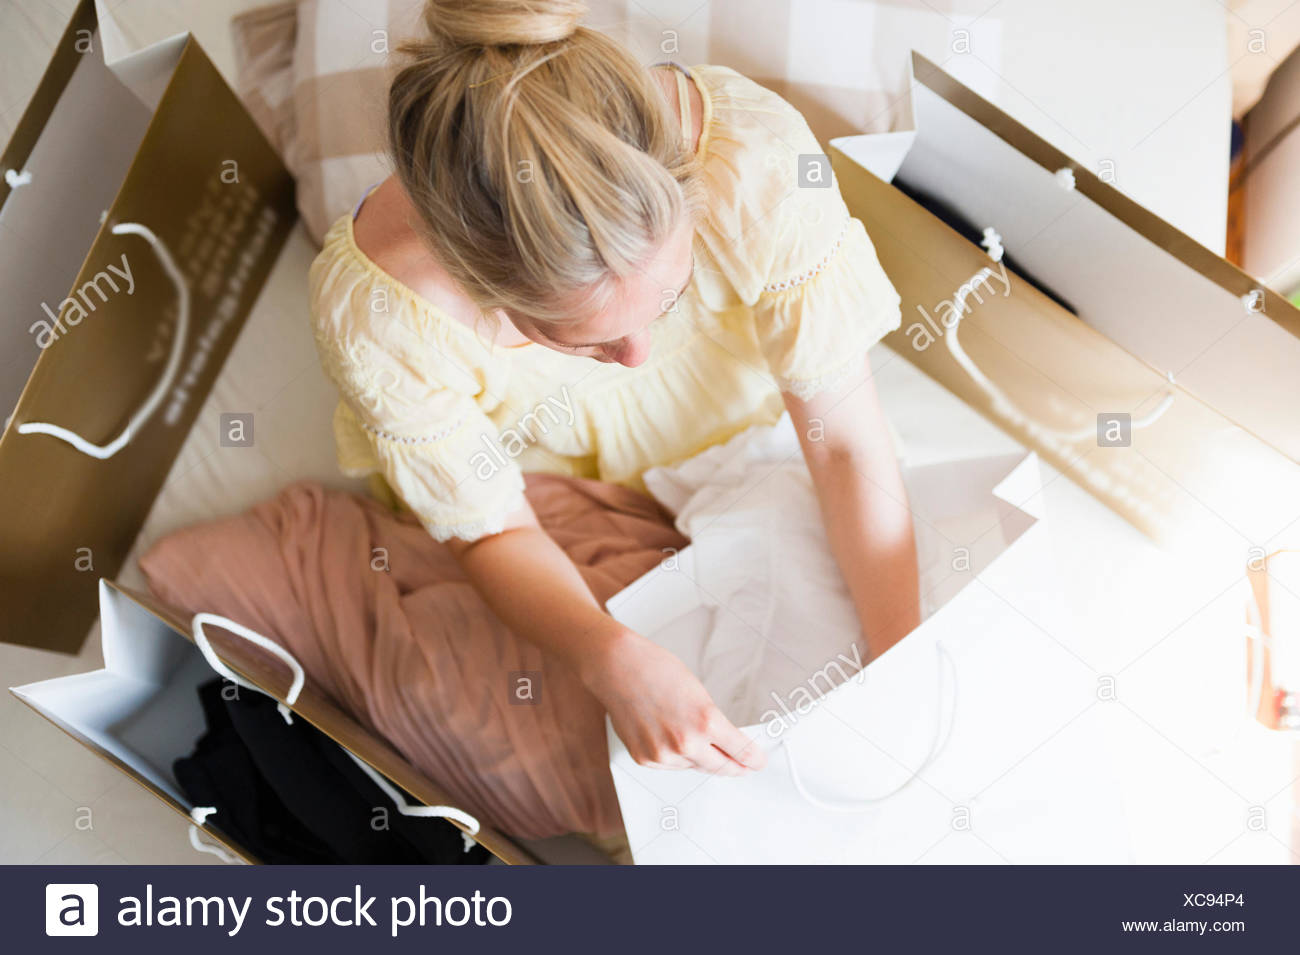 Overhead view of young woman on bed surrounded by shopping bags - Stock Image